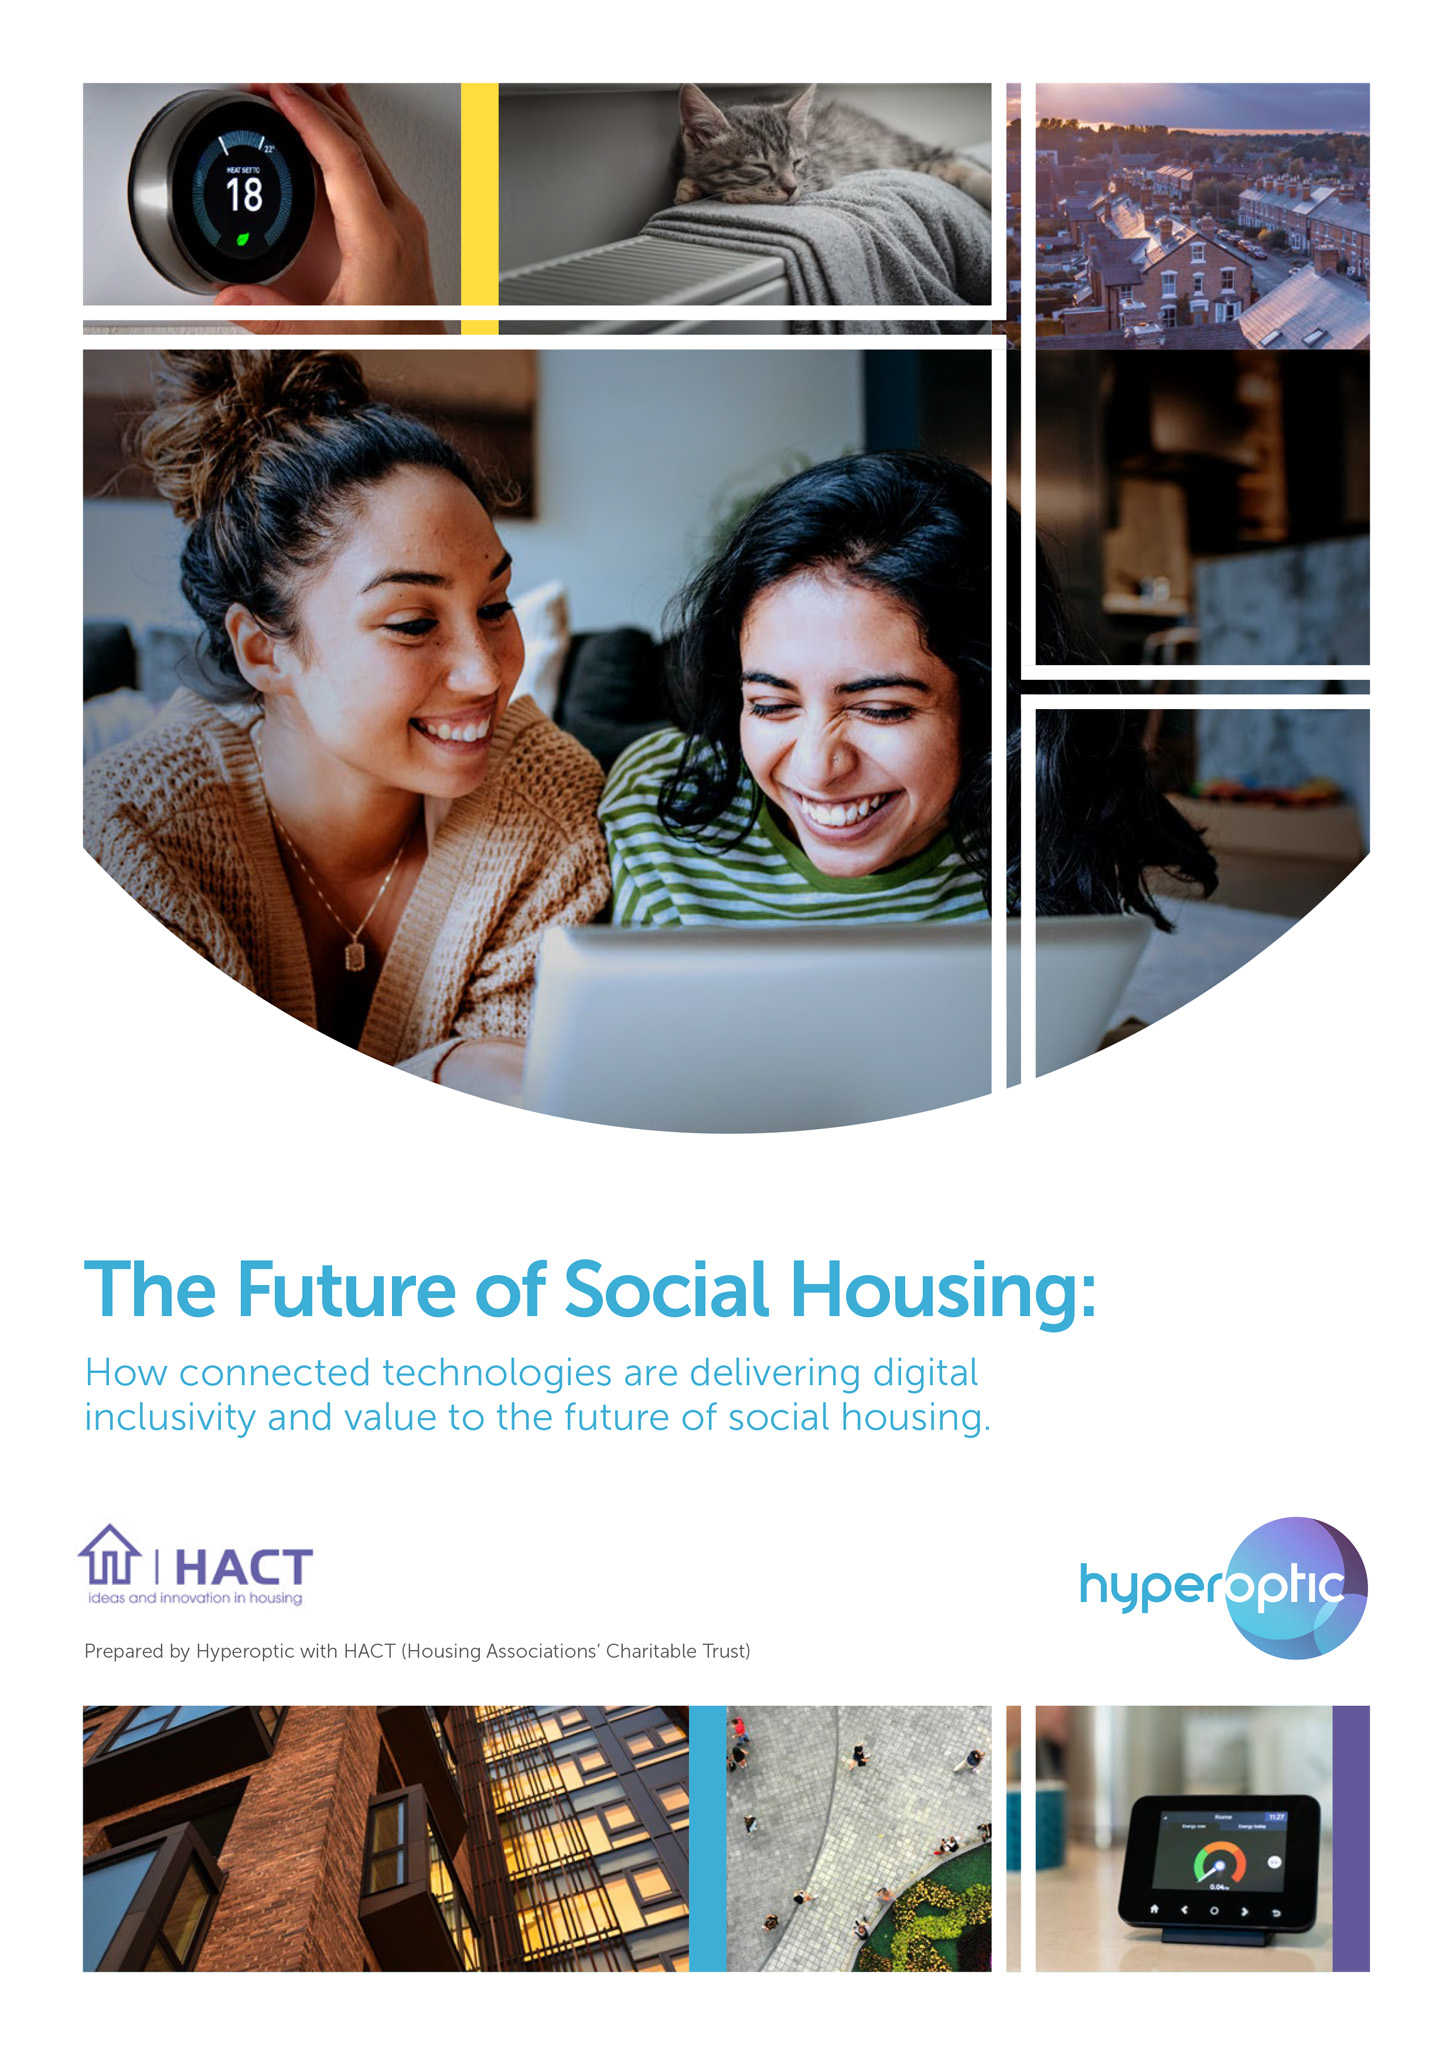 Technology enabling social housing providers to refocus back to the future